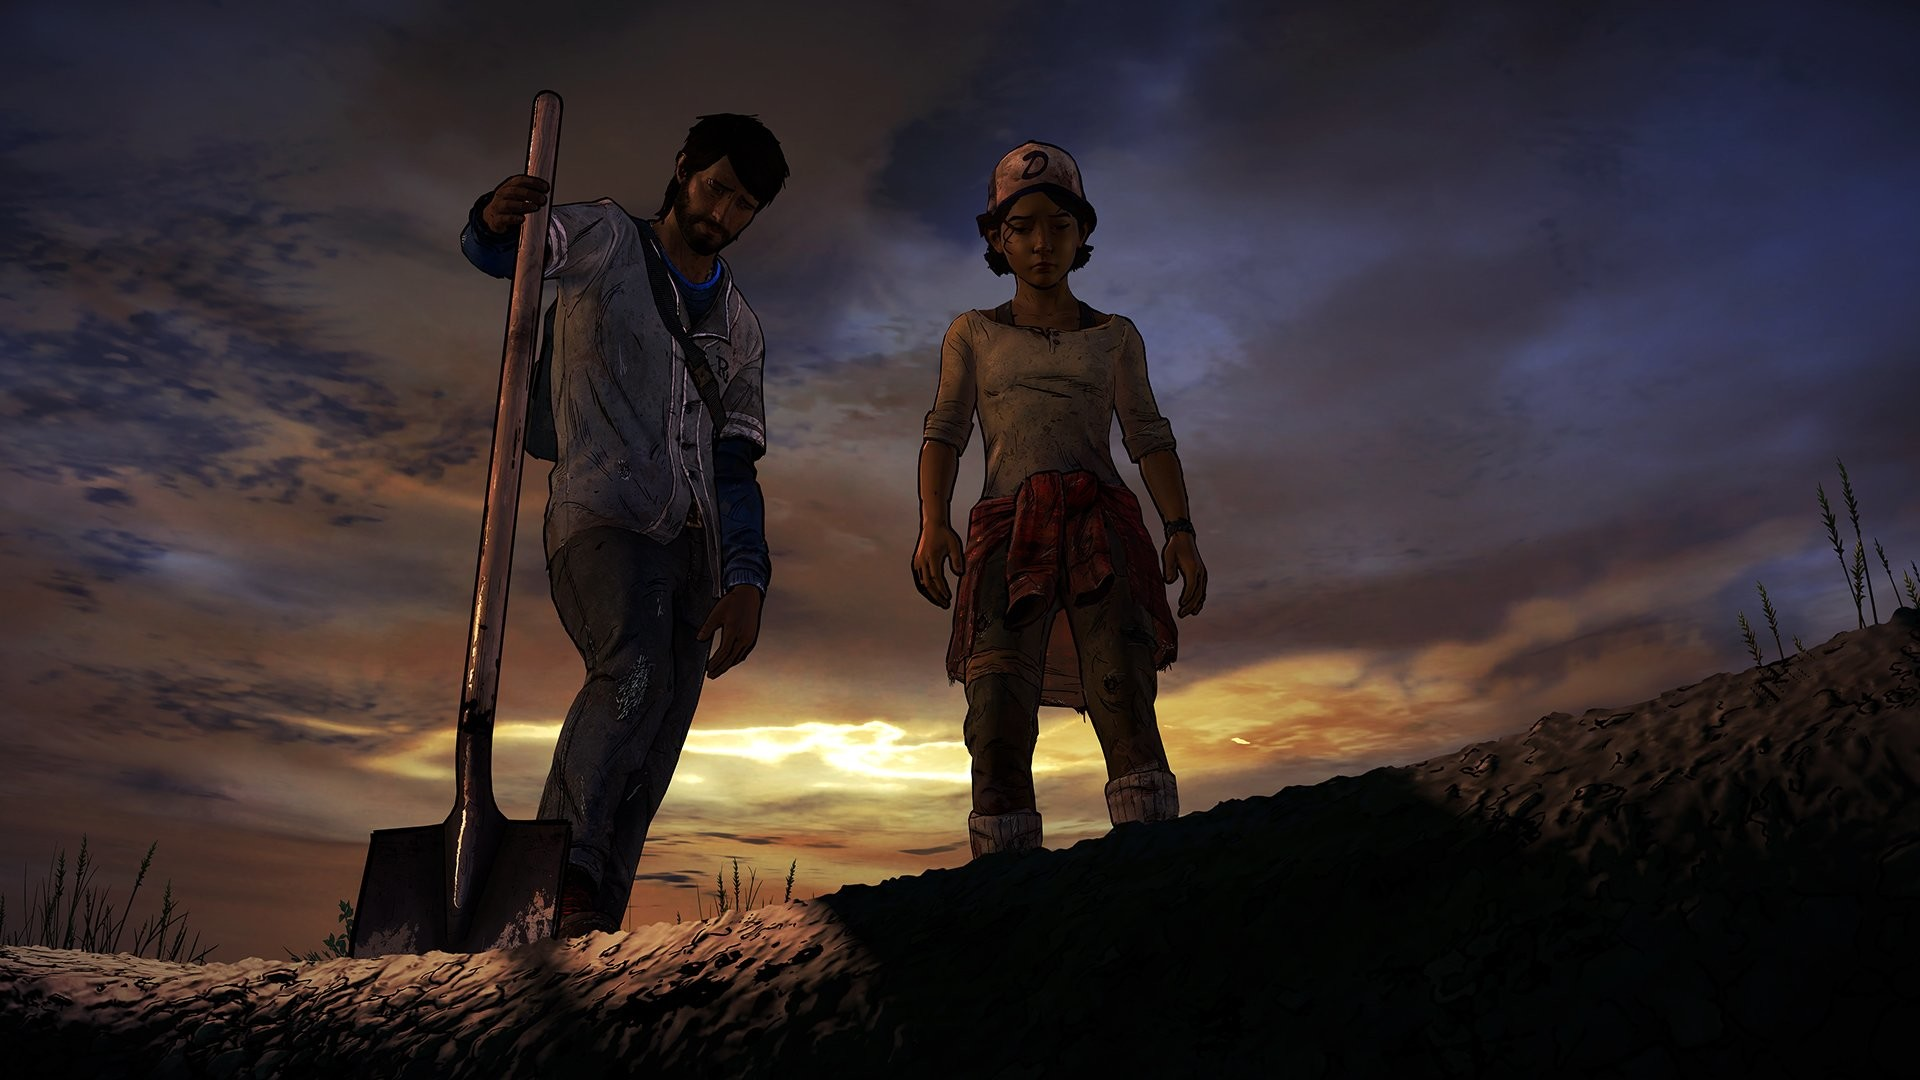 1920x1080 The Walking Dead Wallpaper Pictures 1920A 1080 Wallpapers 51